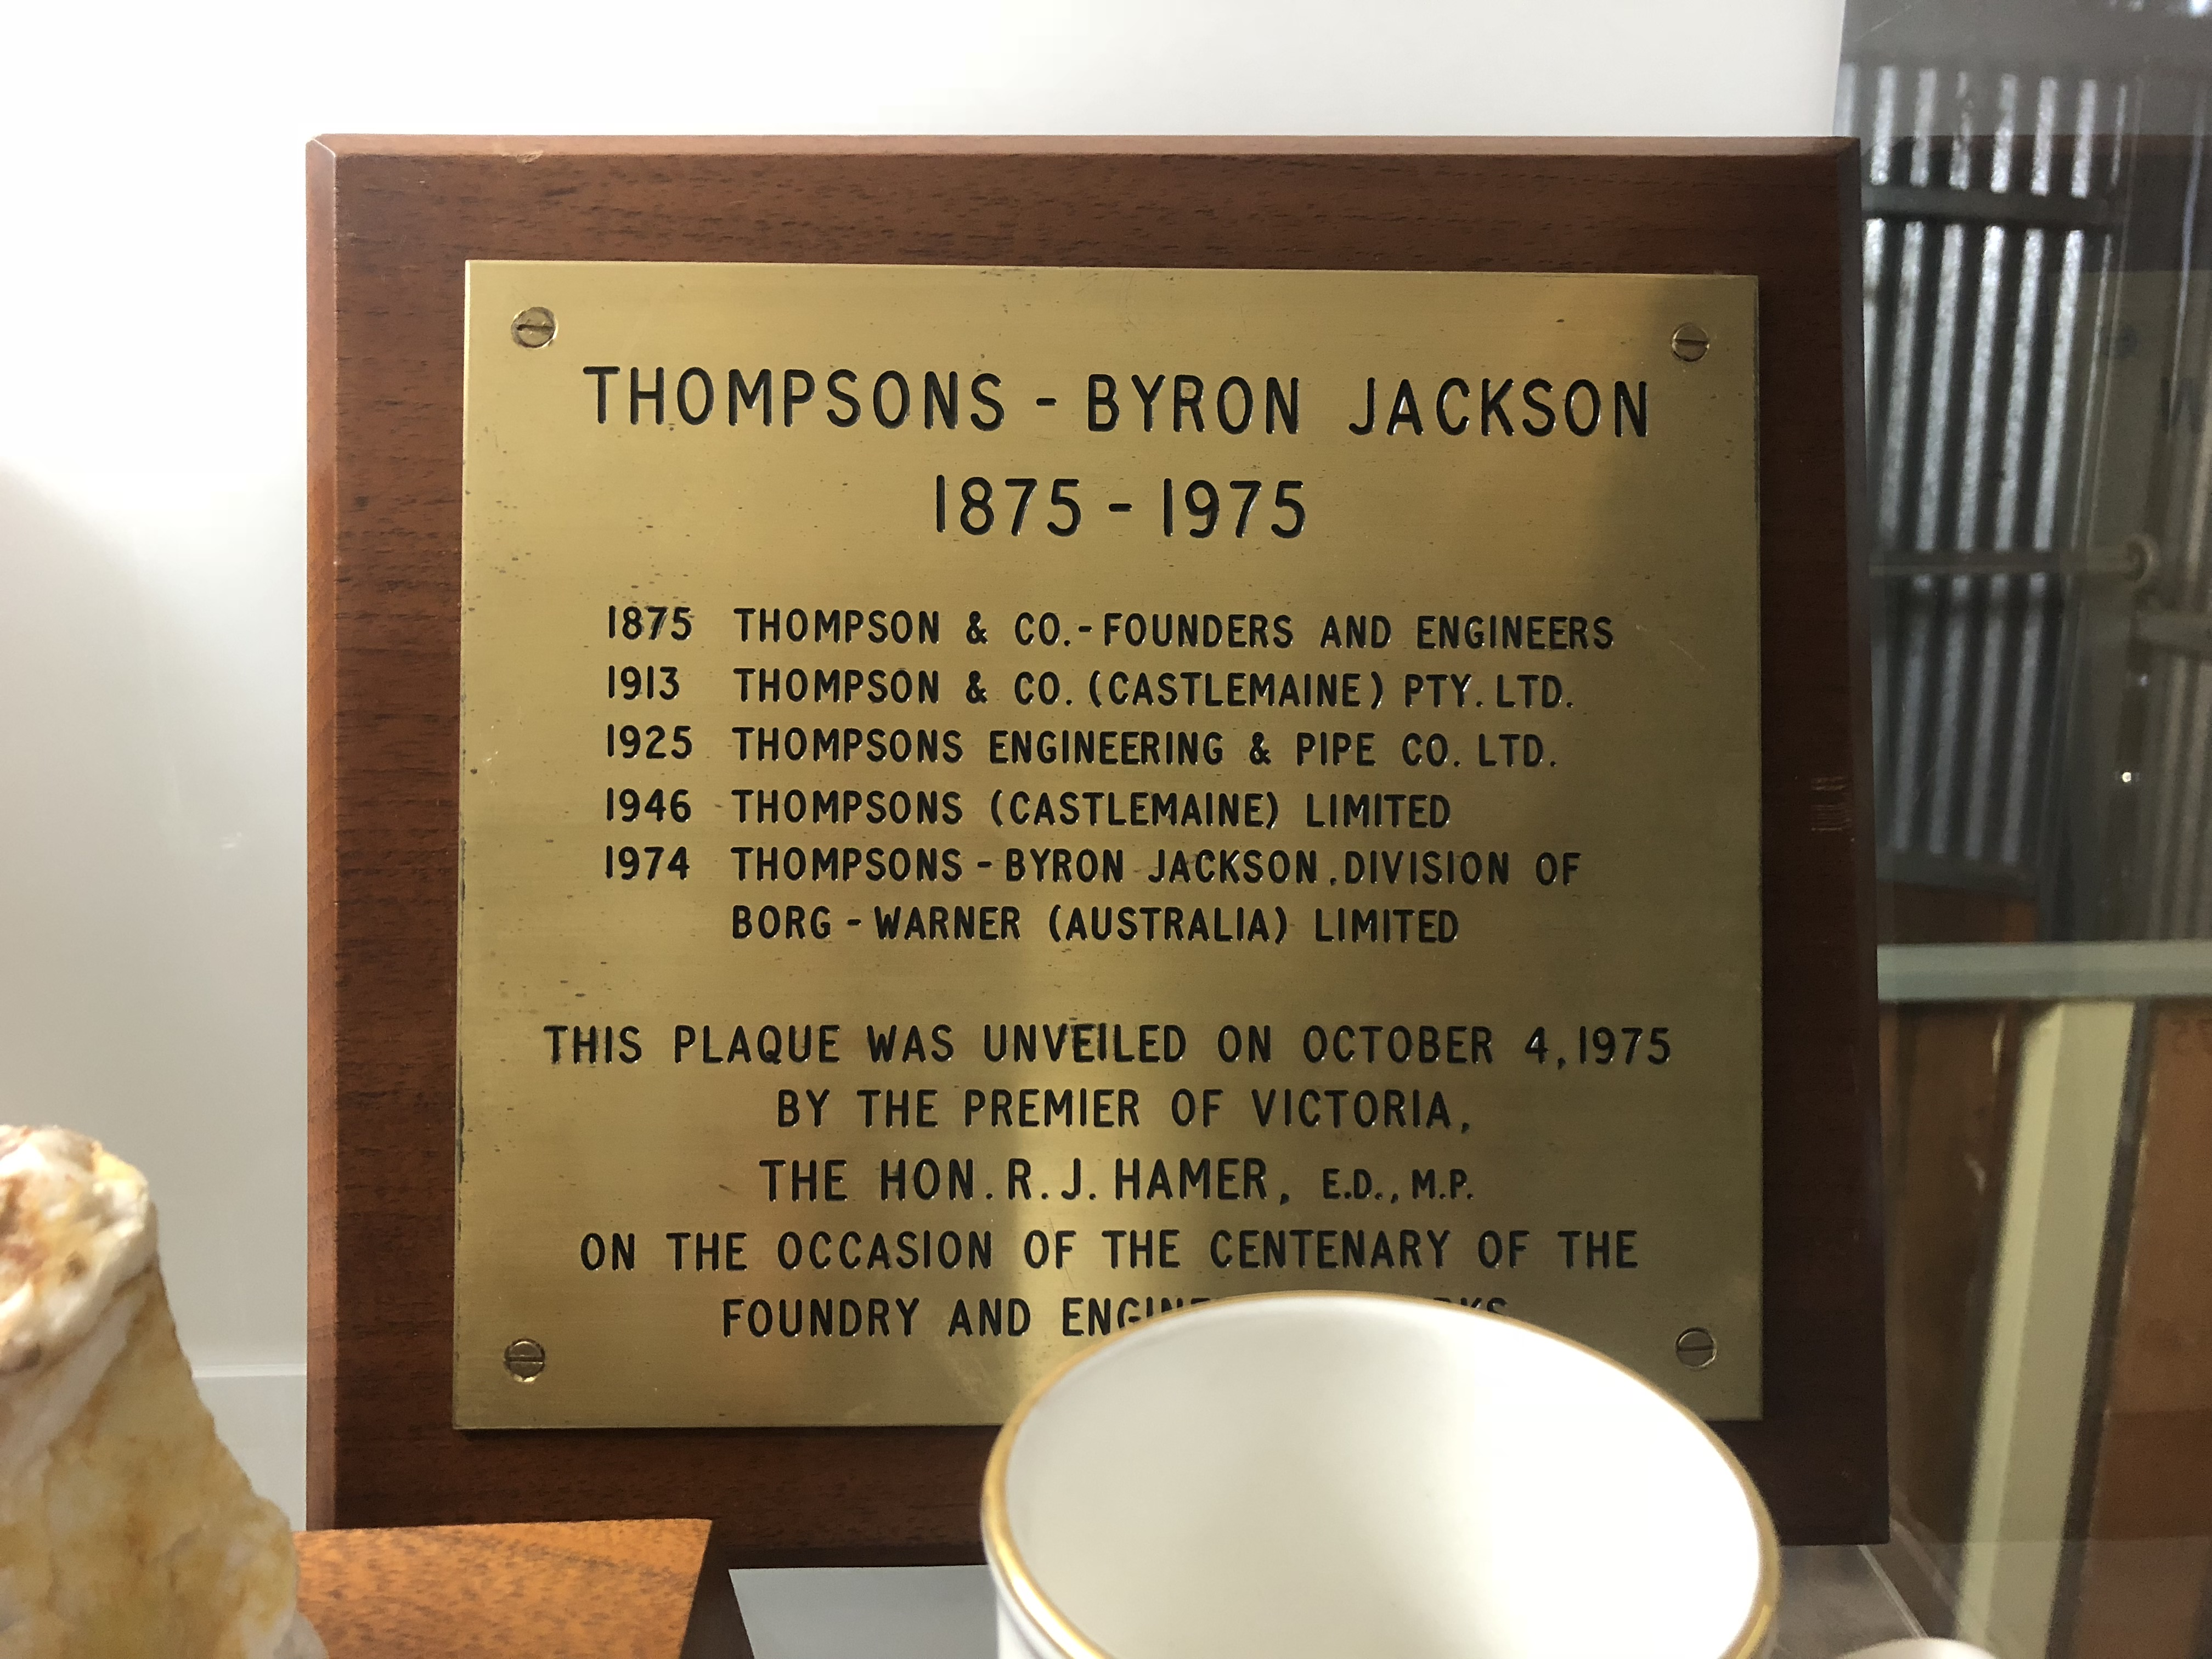 Plaque listing the evolution of Thompson's business